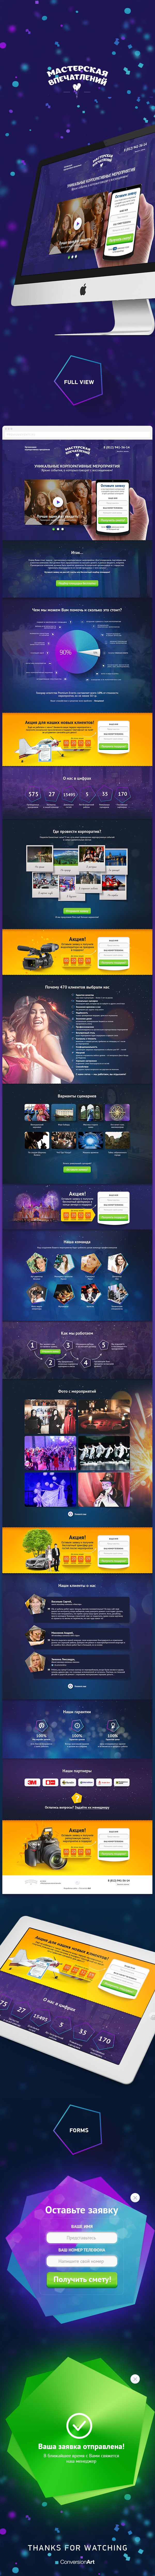 Landing Page for Event company by ConversionArt agency, via Behance